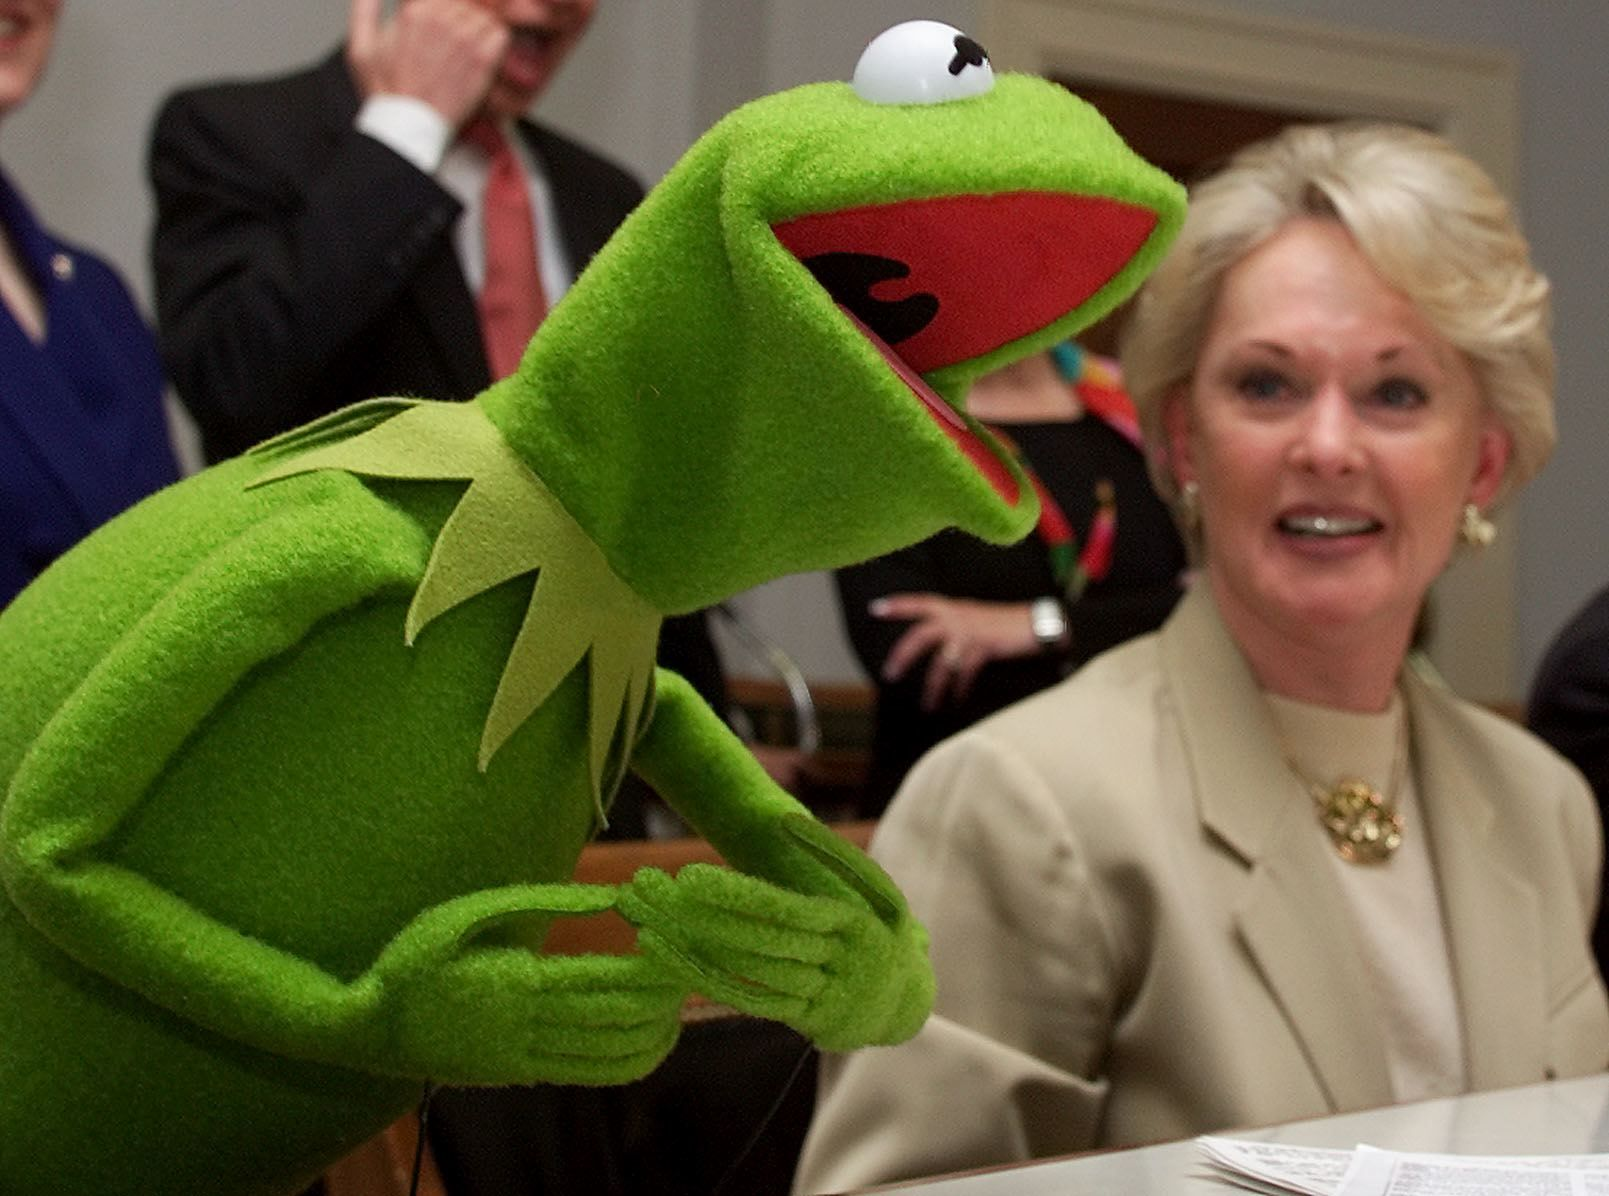 Muppets Kermit the Frog to Get a New Croak After 27 Years